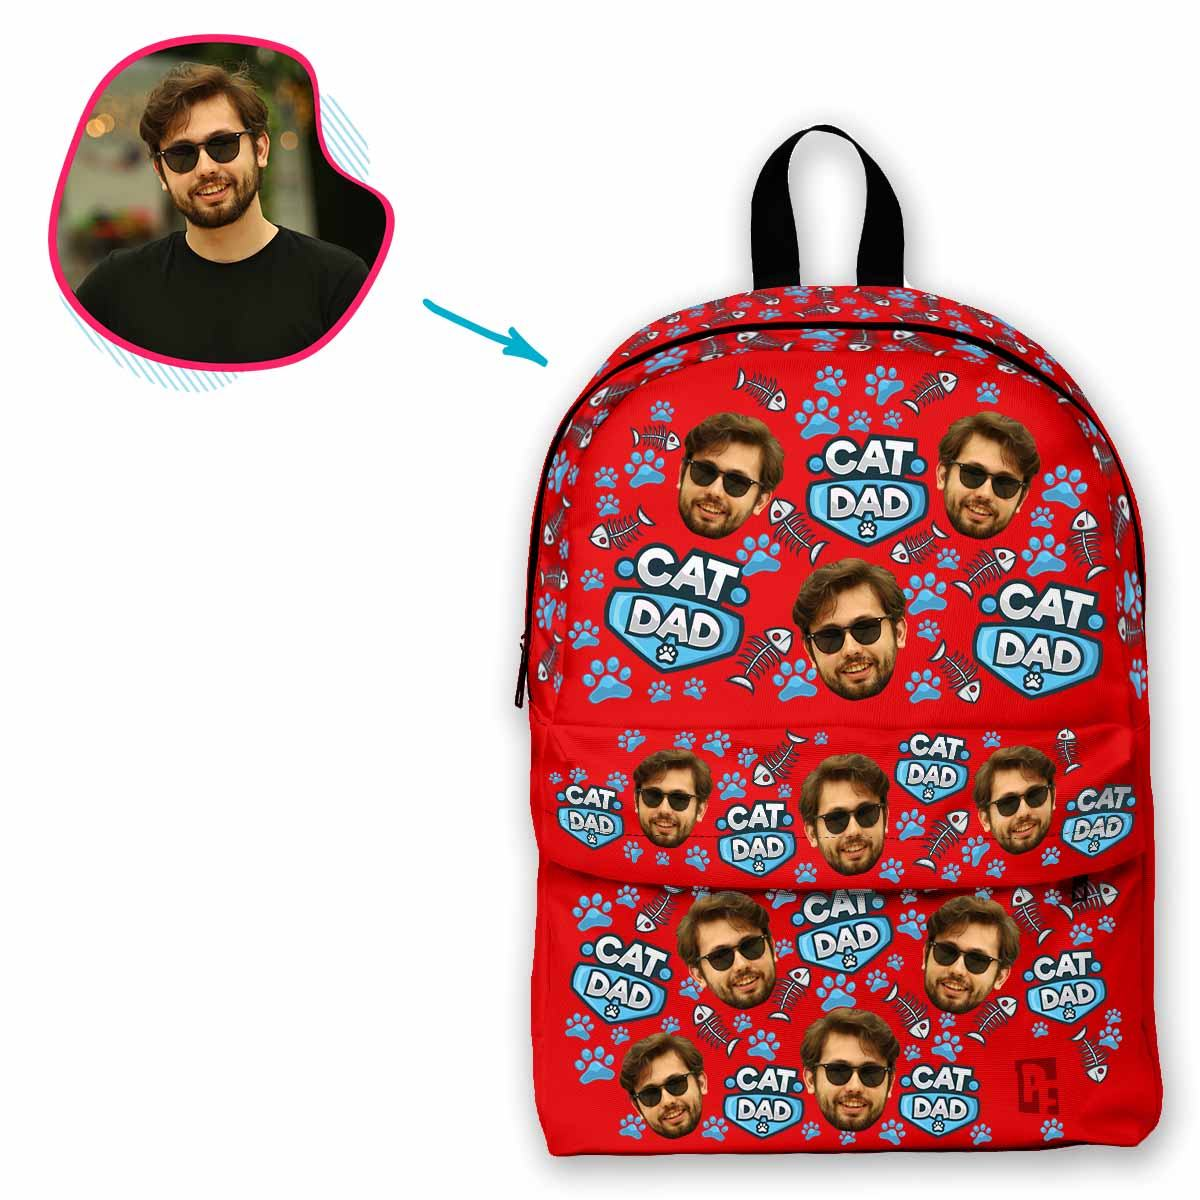 red Cat Dad classic backpack personalized with photo of face printed on it